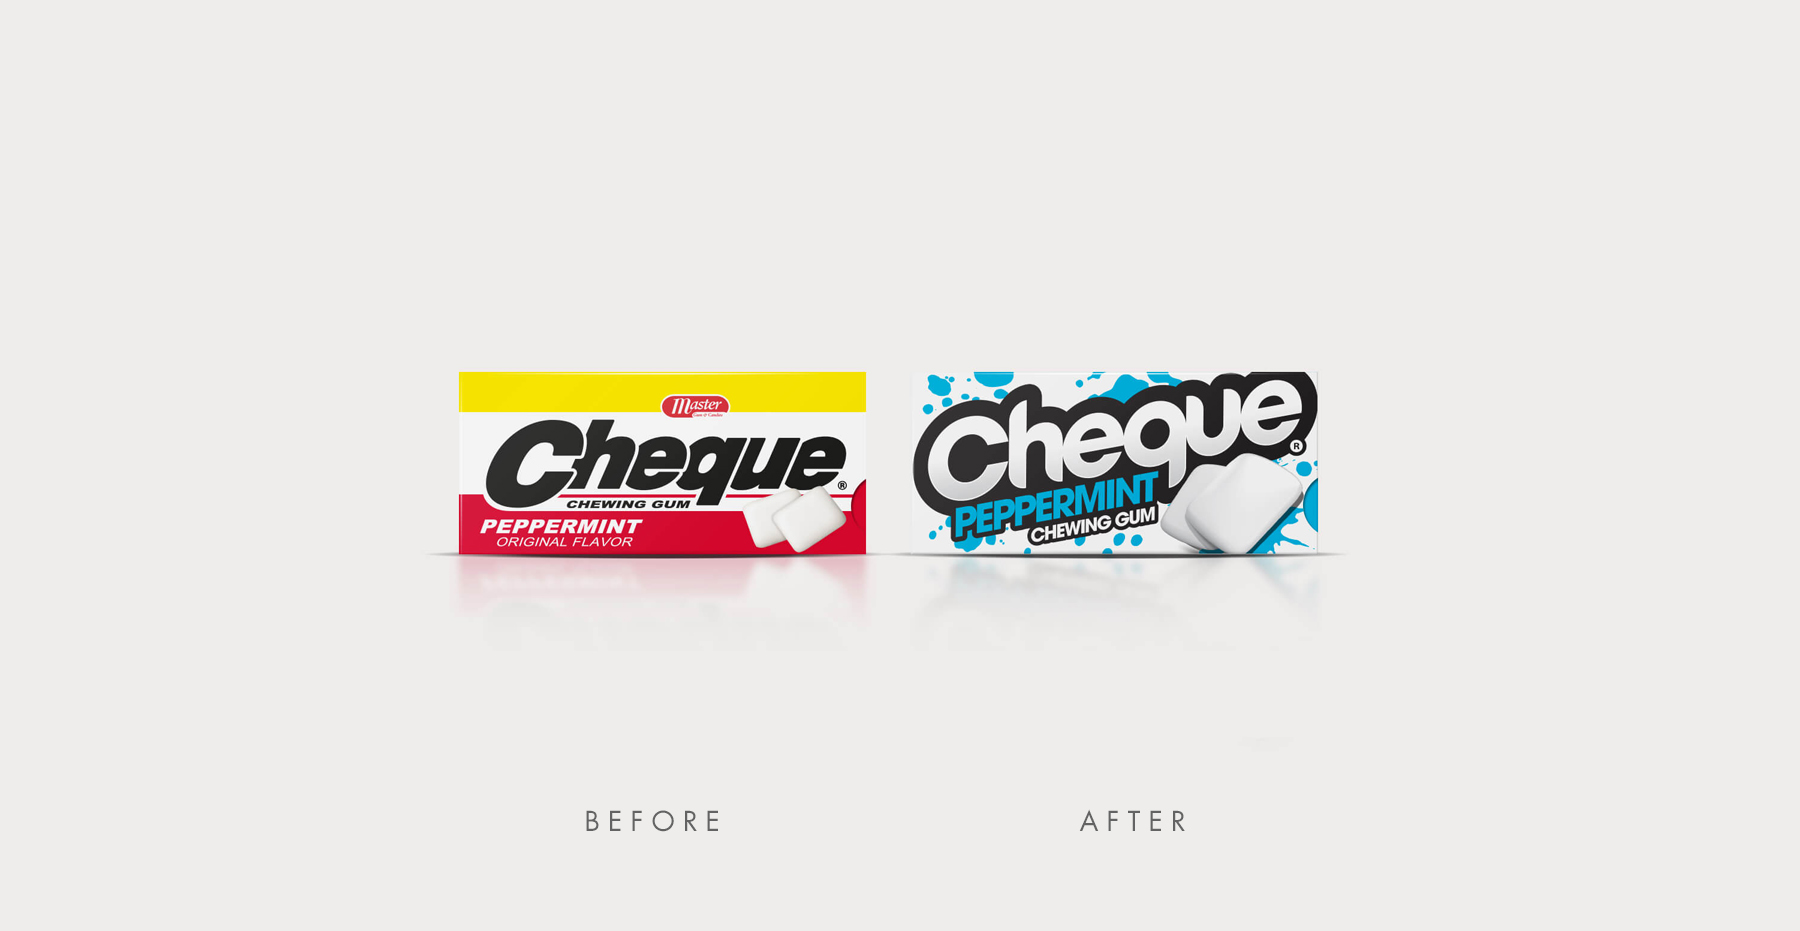 Branding and Packaging Design for Confectionary Brand Cheque Gum - Before and After